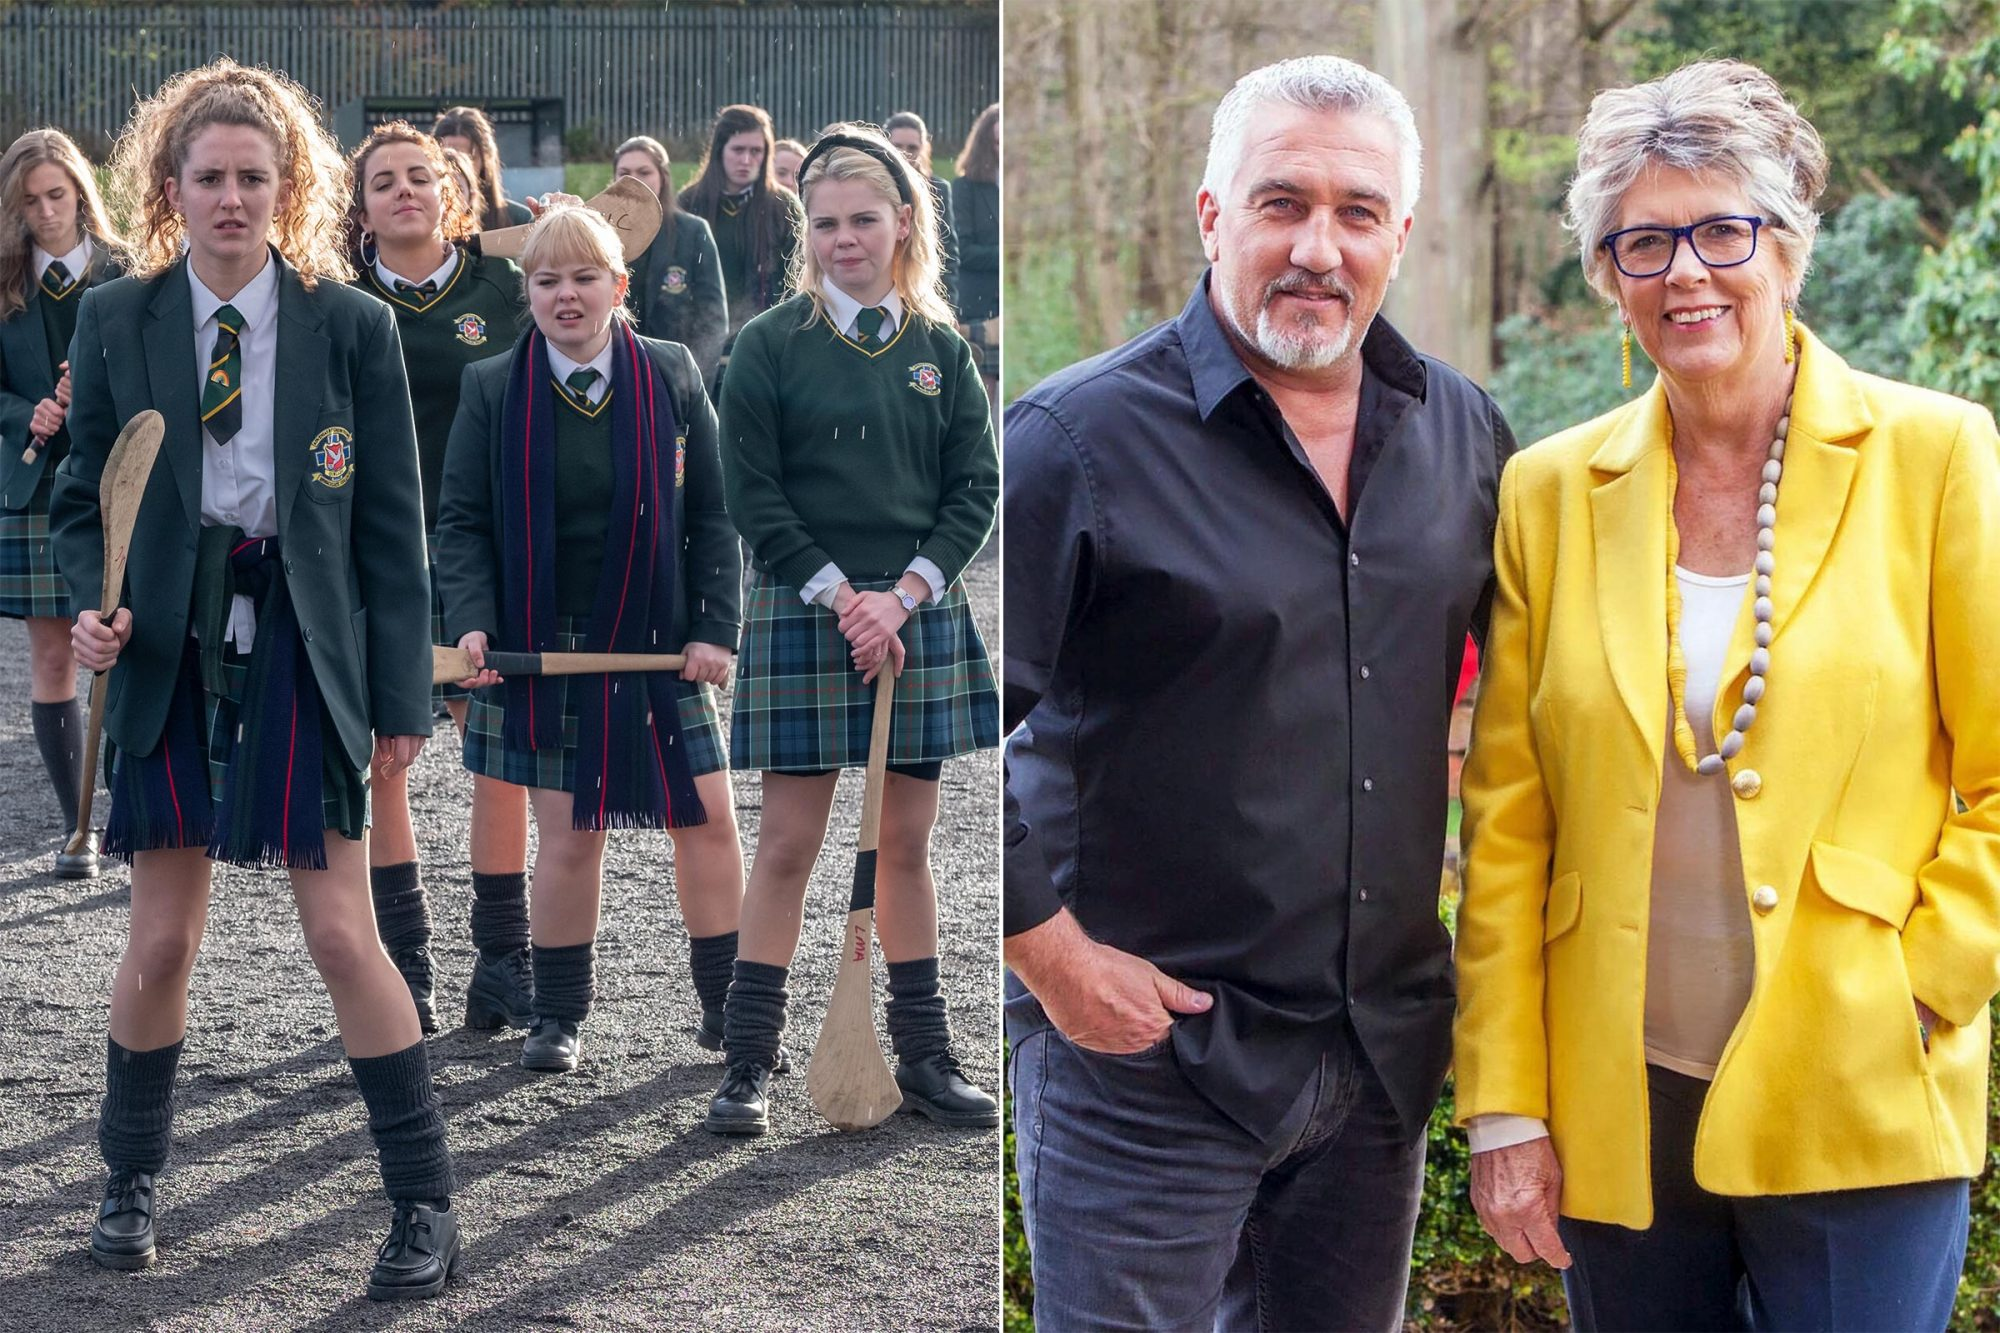 Derry Girls / Bake Off